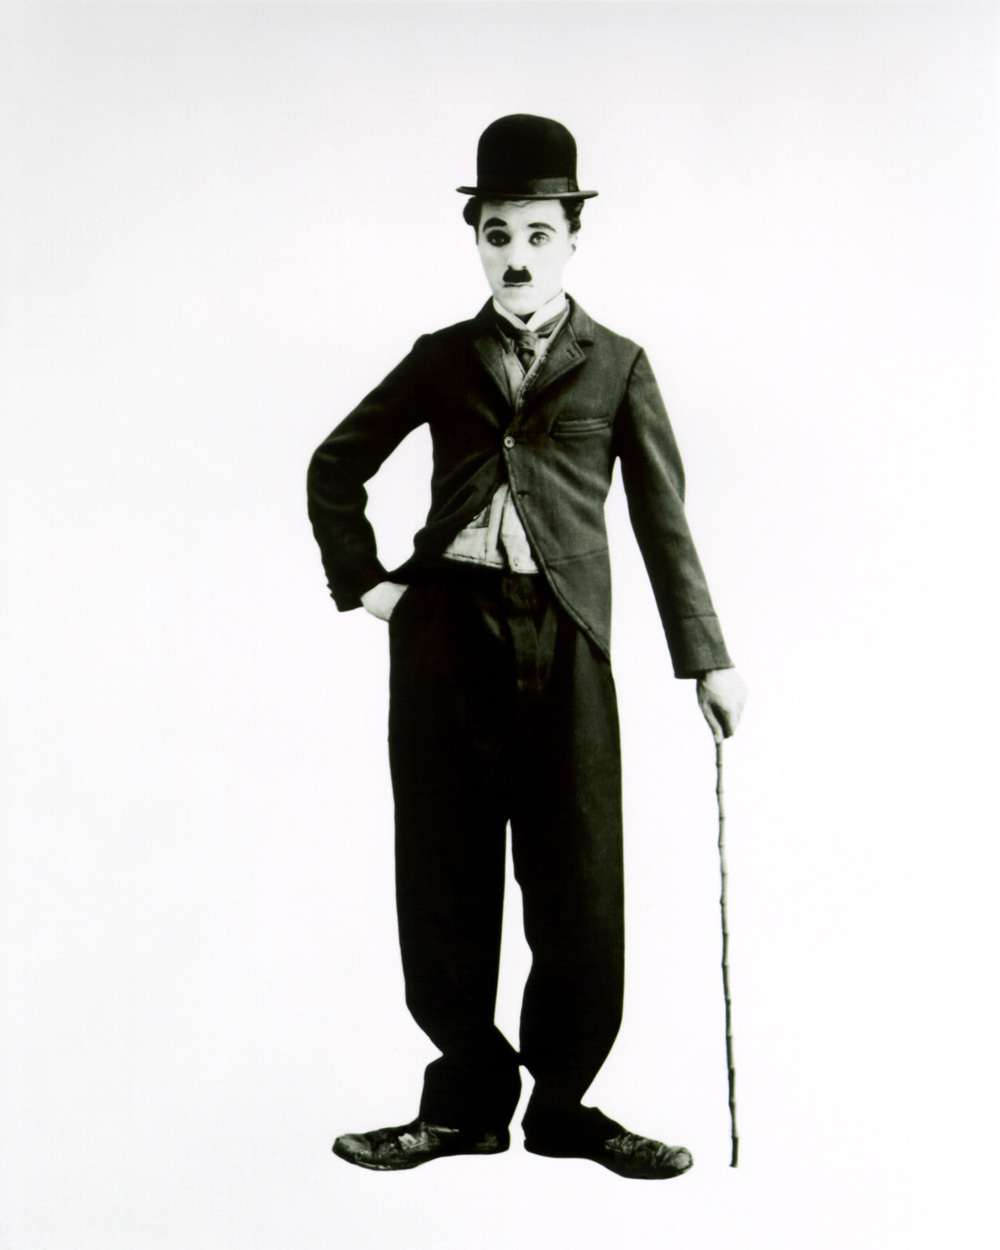 CC image Charlie Chaplin by Insomnia Cured Here at Flickr